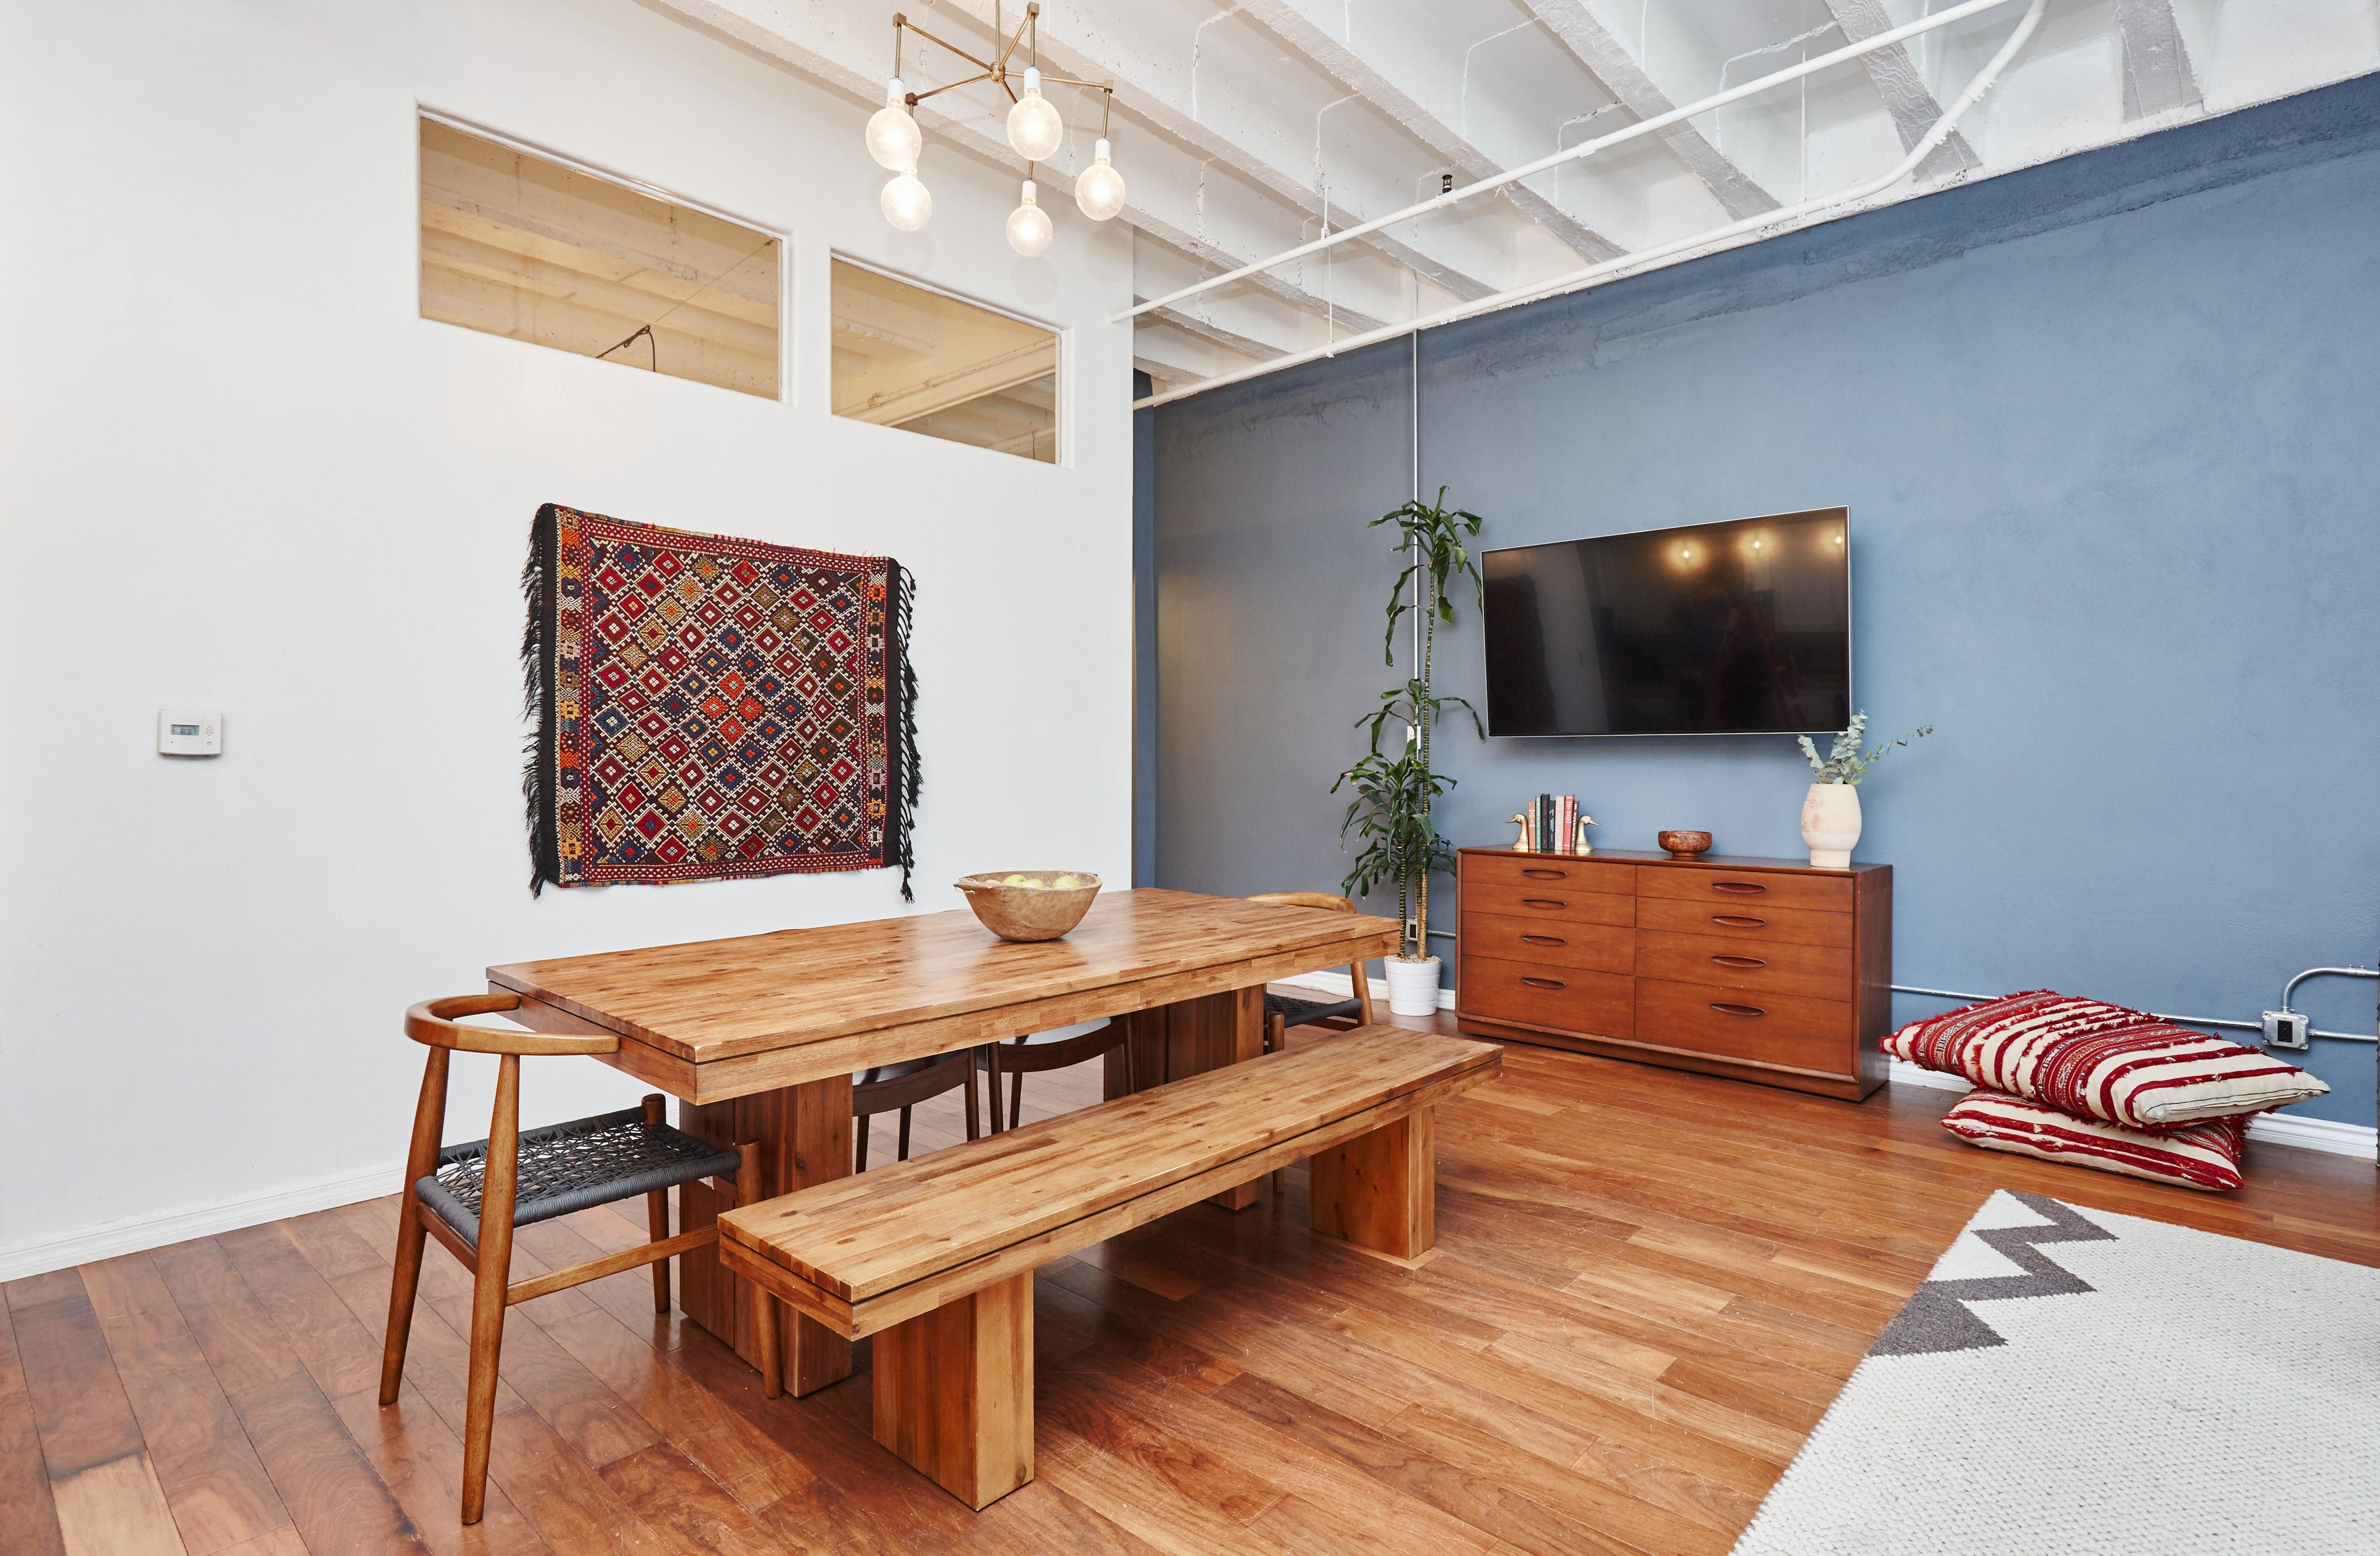 This Modern Boho Loft Used to Be a 1920s Department Store